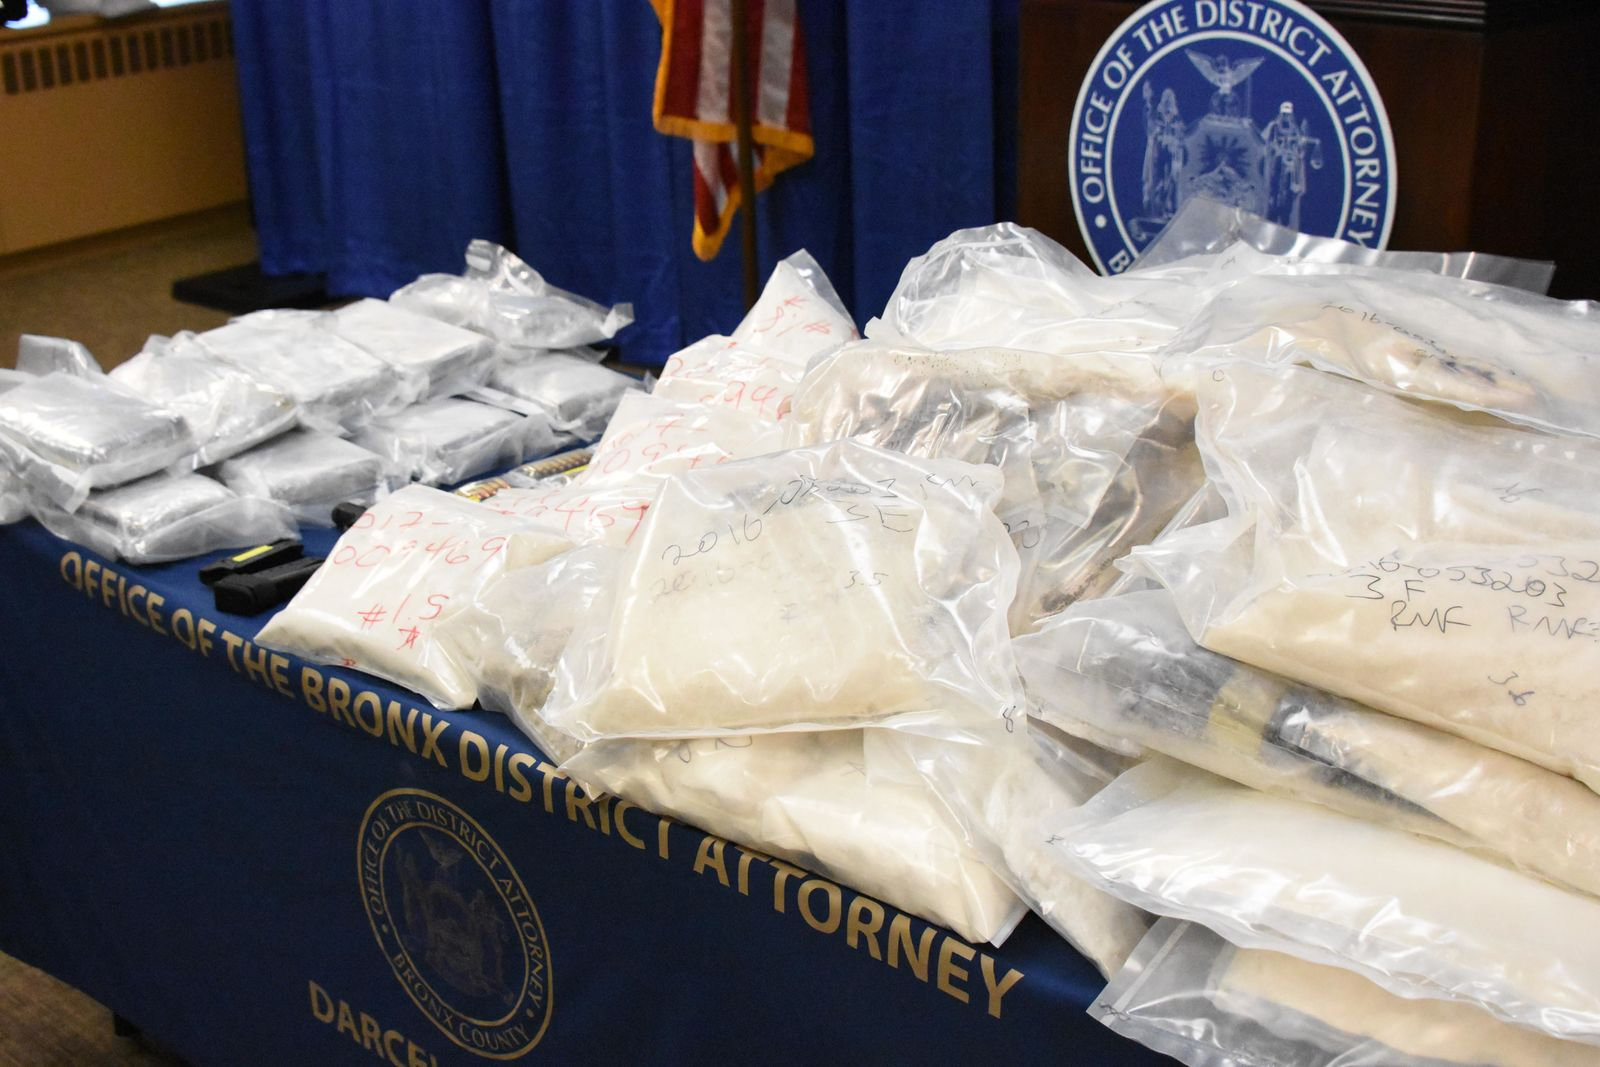 China announced Monday it will control all fentanyl products as controlled substances. This July 2, 2018 photo shows packages of heroin and fentanyl seized by the New York Fire Department. a U.S. law enforcement official handles a bag of powdered fentanyl. (Photo: DEA.gov)